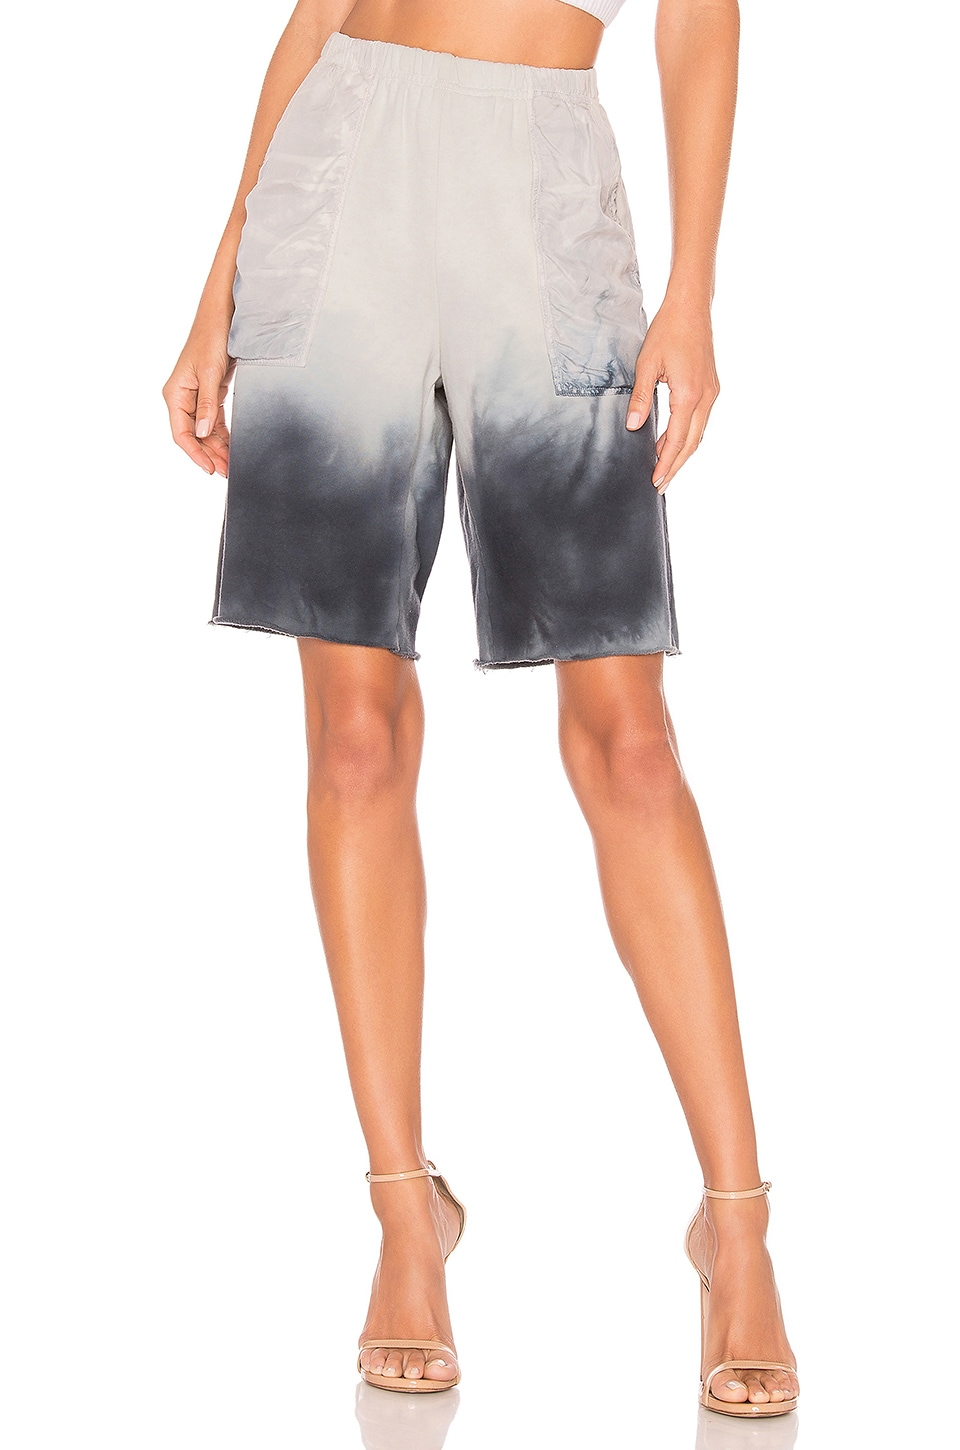 Raquel Allegra Short in Wind Tie Dye